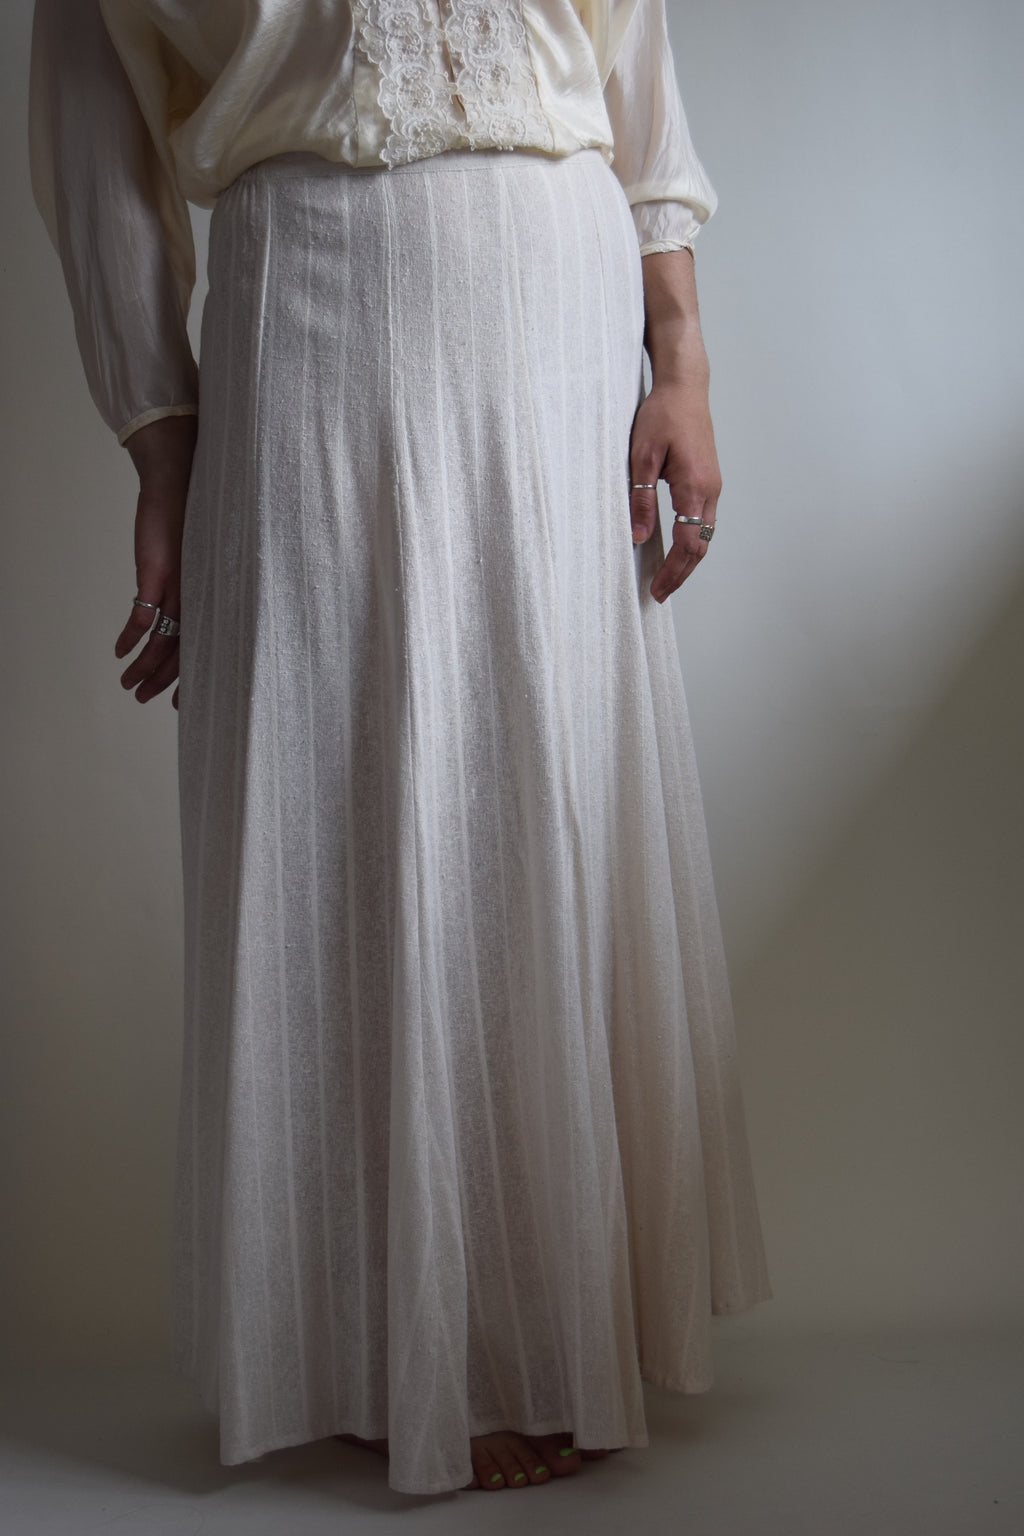 Vintage Ivory Washed Raw Silk Skirt FREE SHIPPING TO THE U.S.